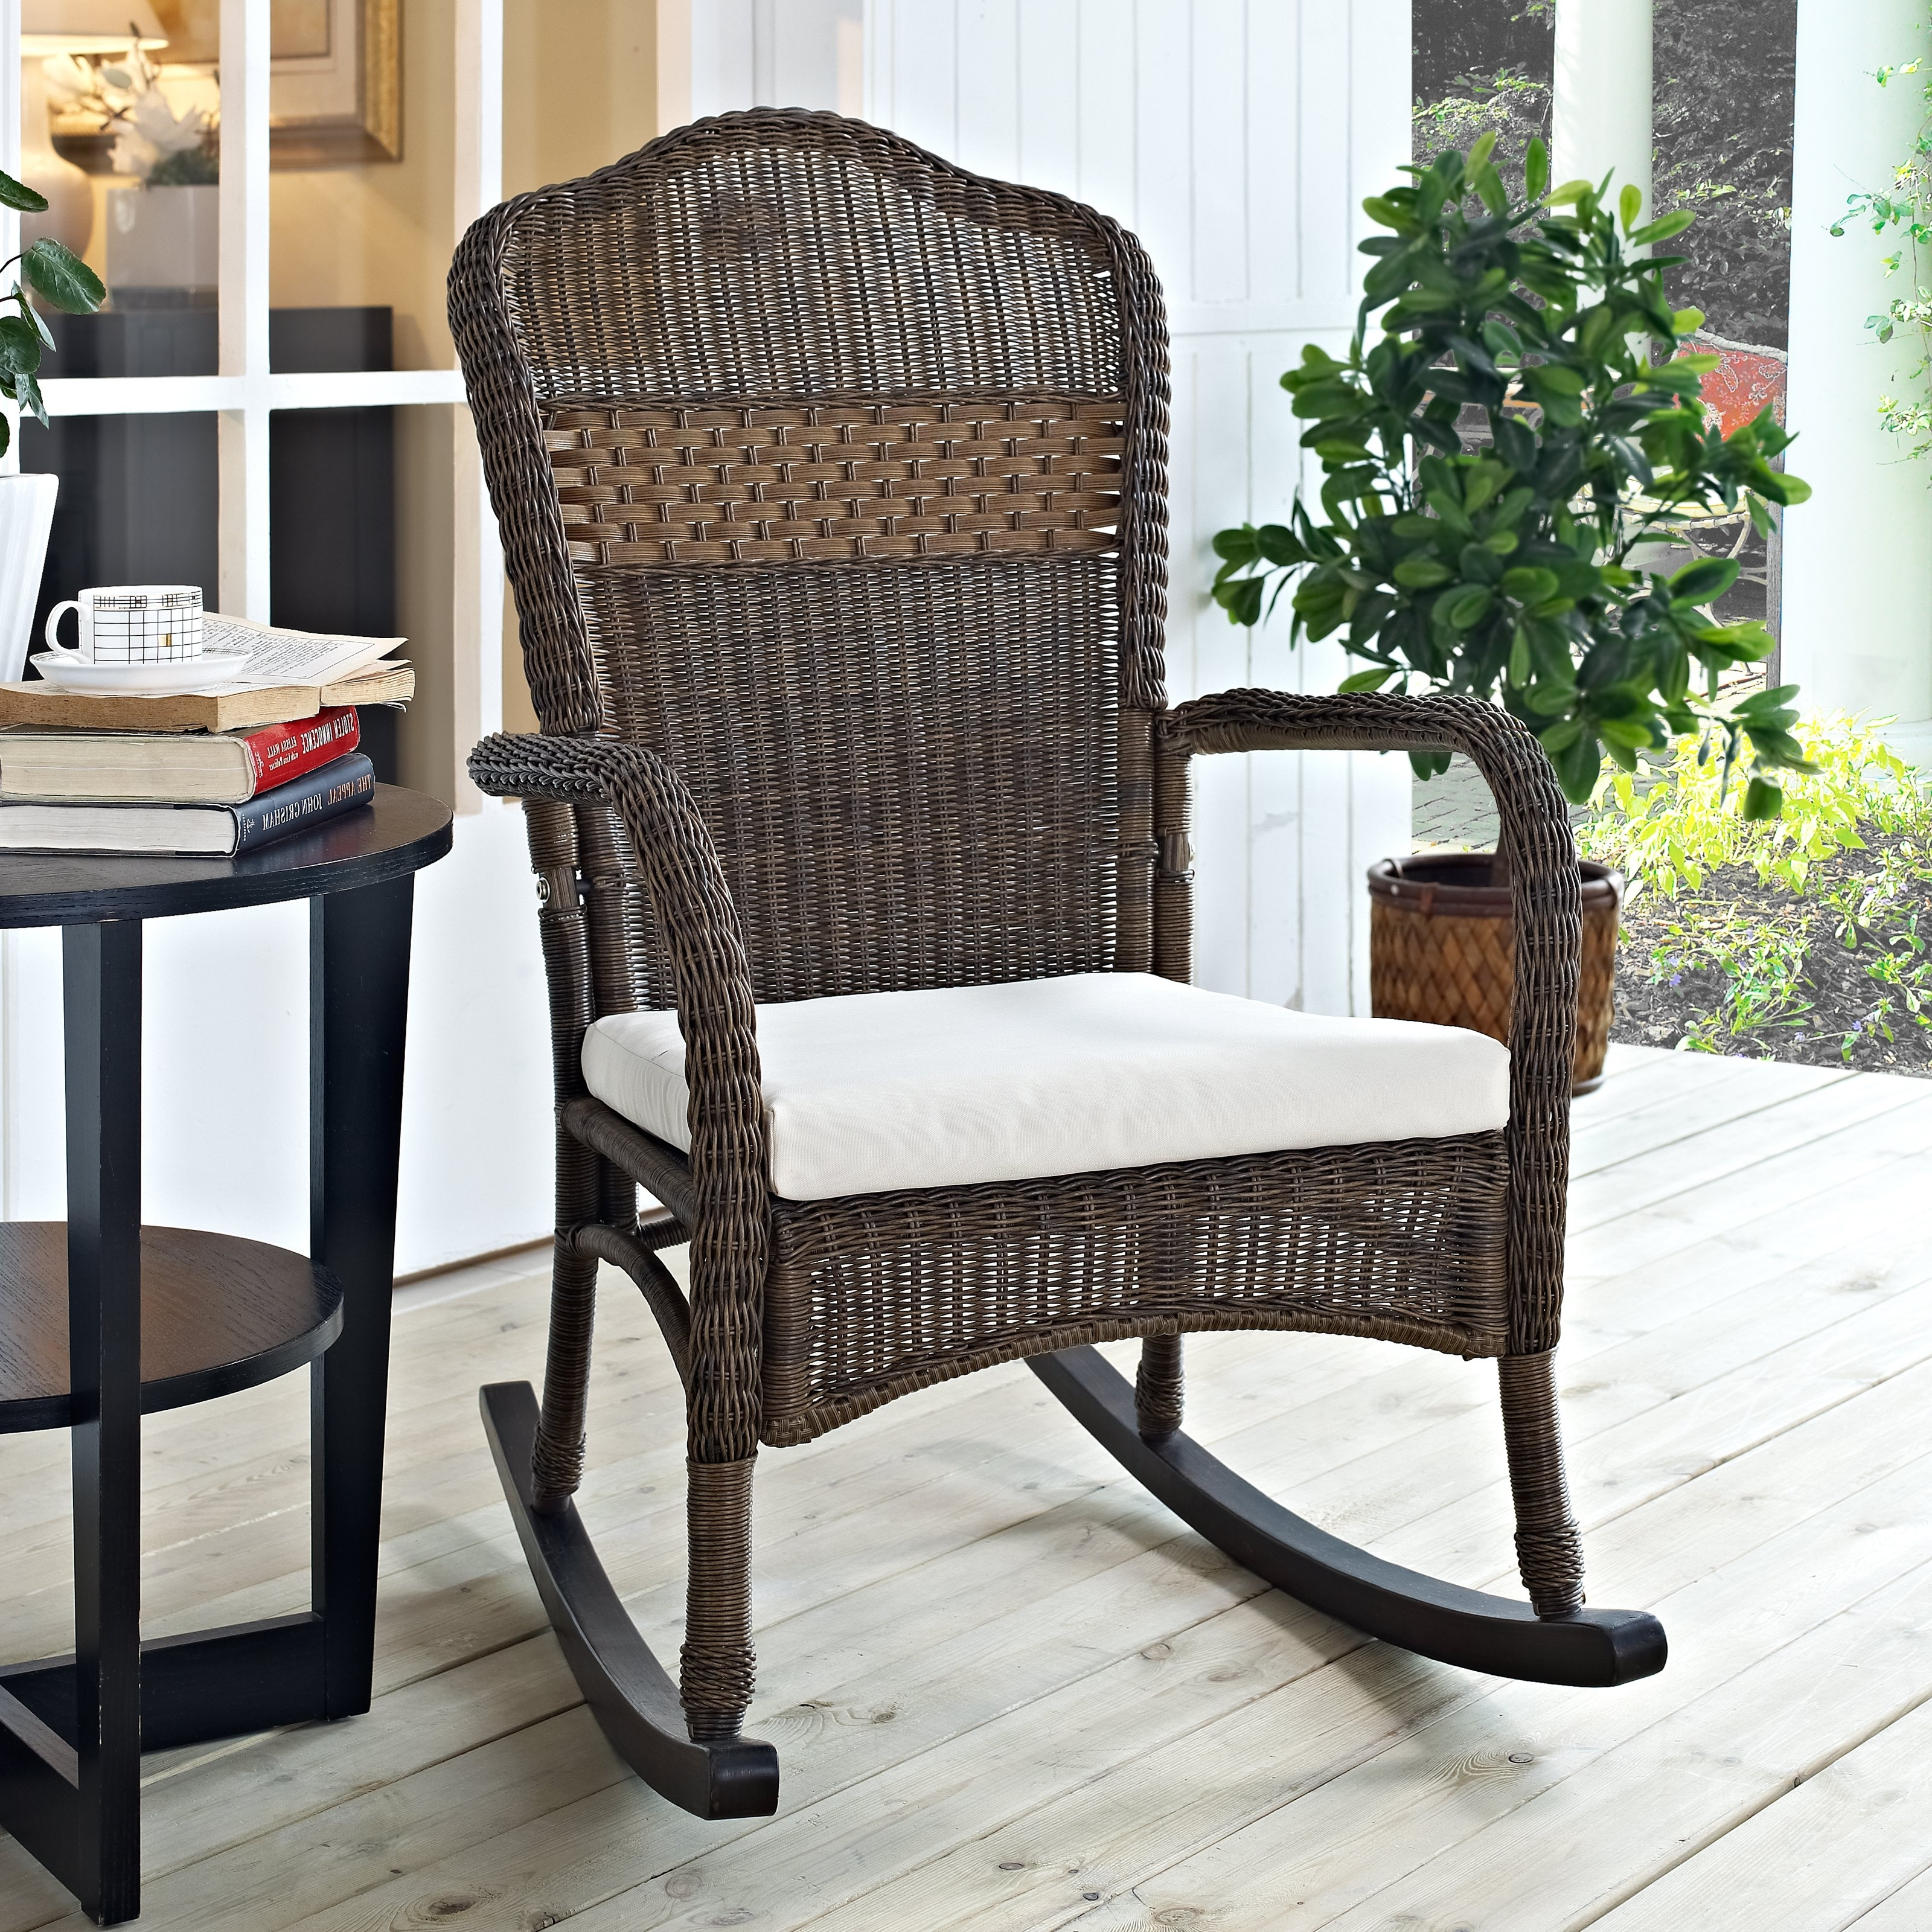 Brown Patio Rocking Chairs Regarding Well Known Wicker Glider Rocking Chair – Wicker Rocking Chair As Real Exotic (View 5 of 20)